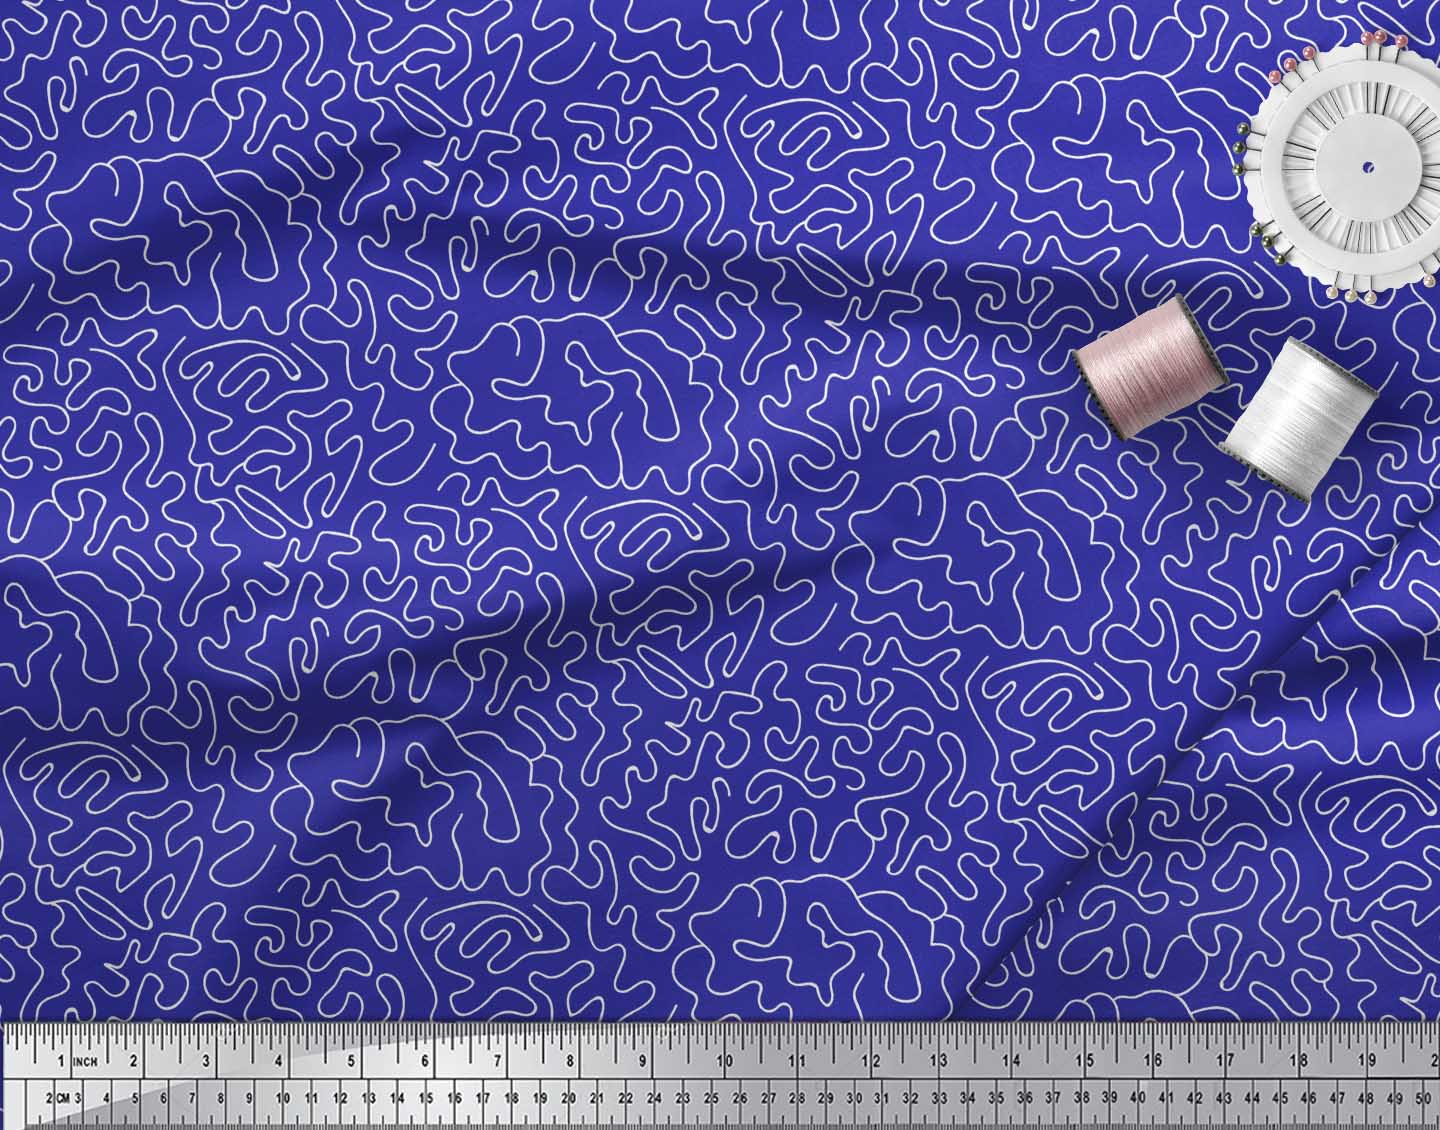 Soimoi-Blue-Cotton-Poplin-Fabric-Abstracts-Abstract-Print-Sewing-Evs thumbnail 4